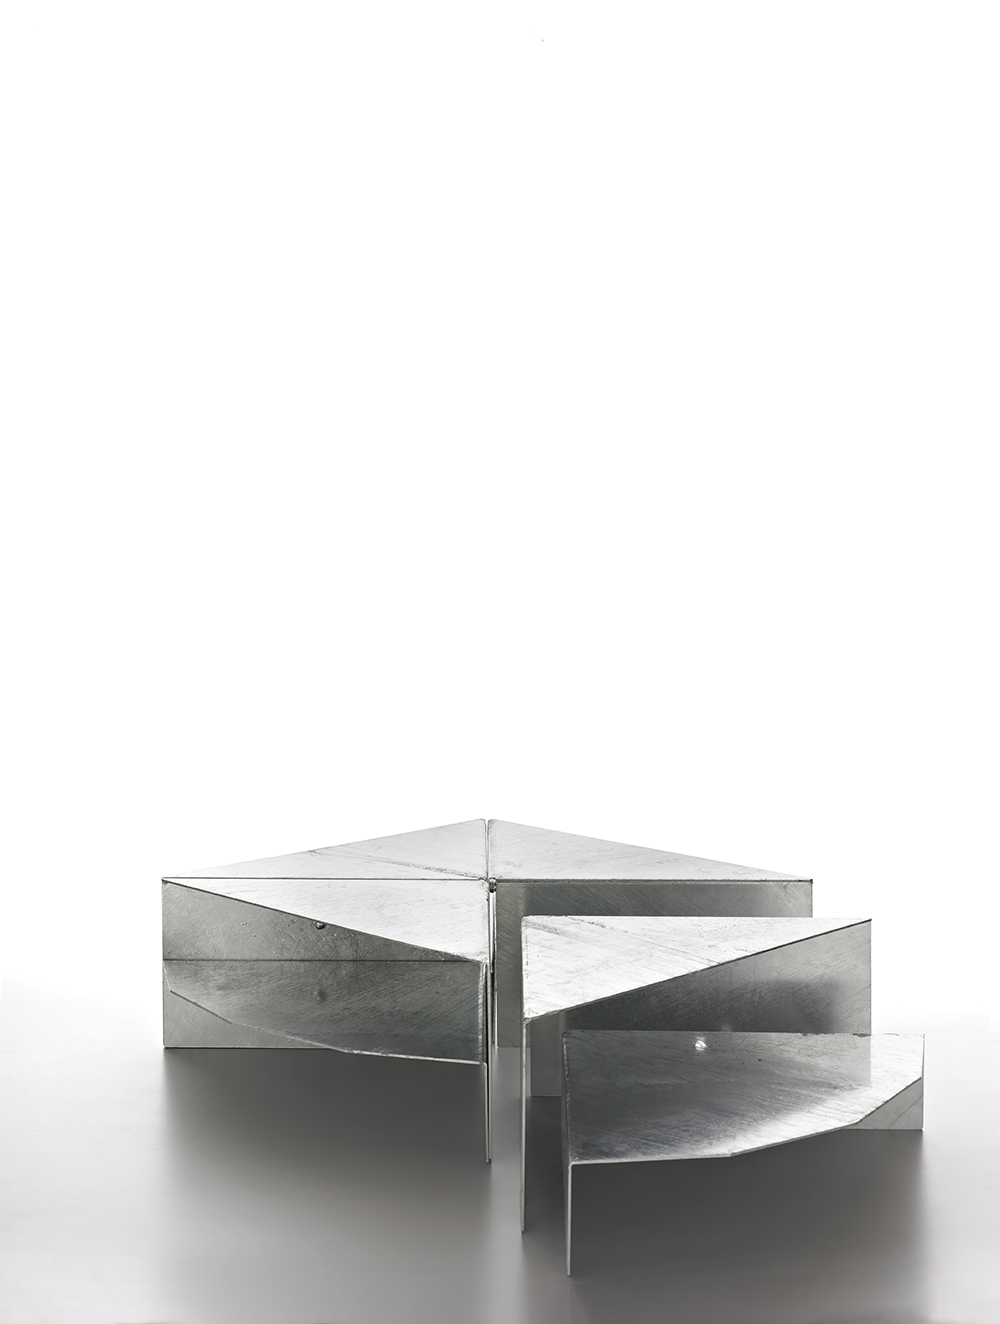 BrooksbankCollins_Carbo Asper_Coffee Table_Galvanised_Components_1